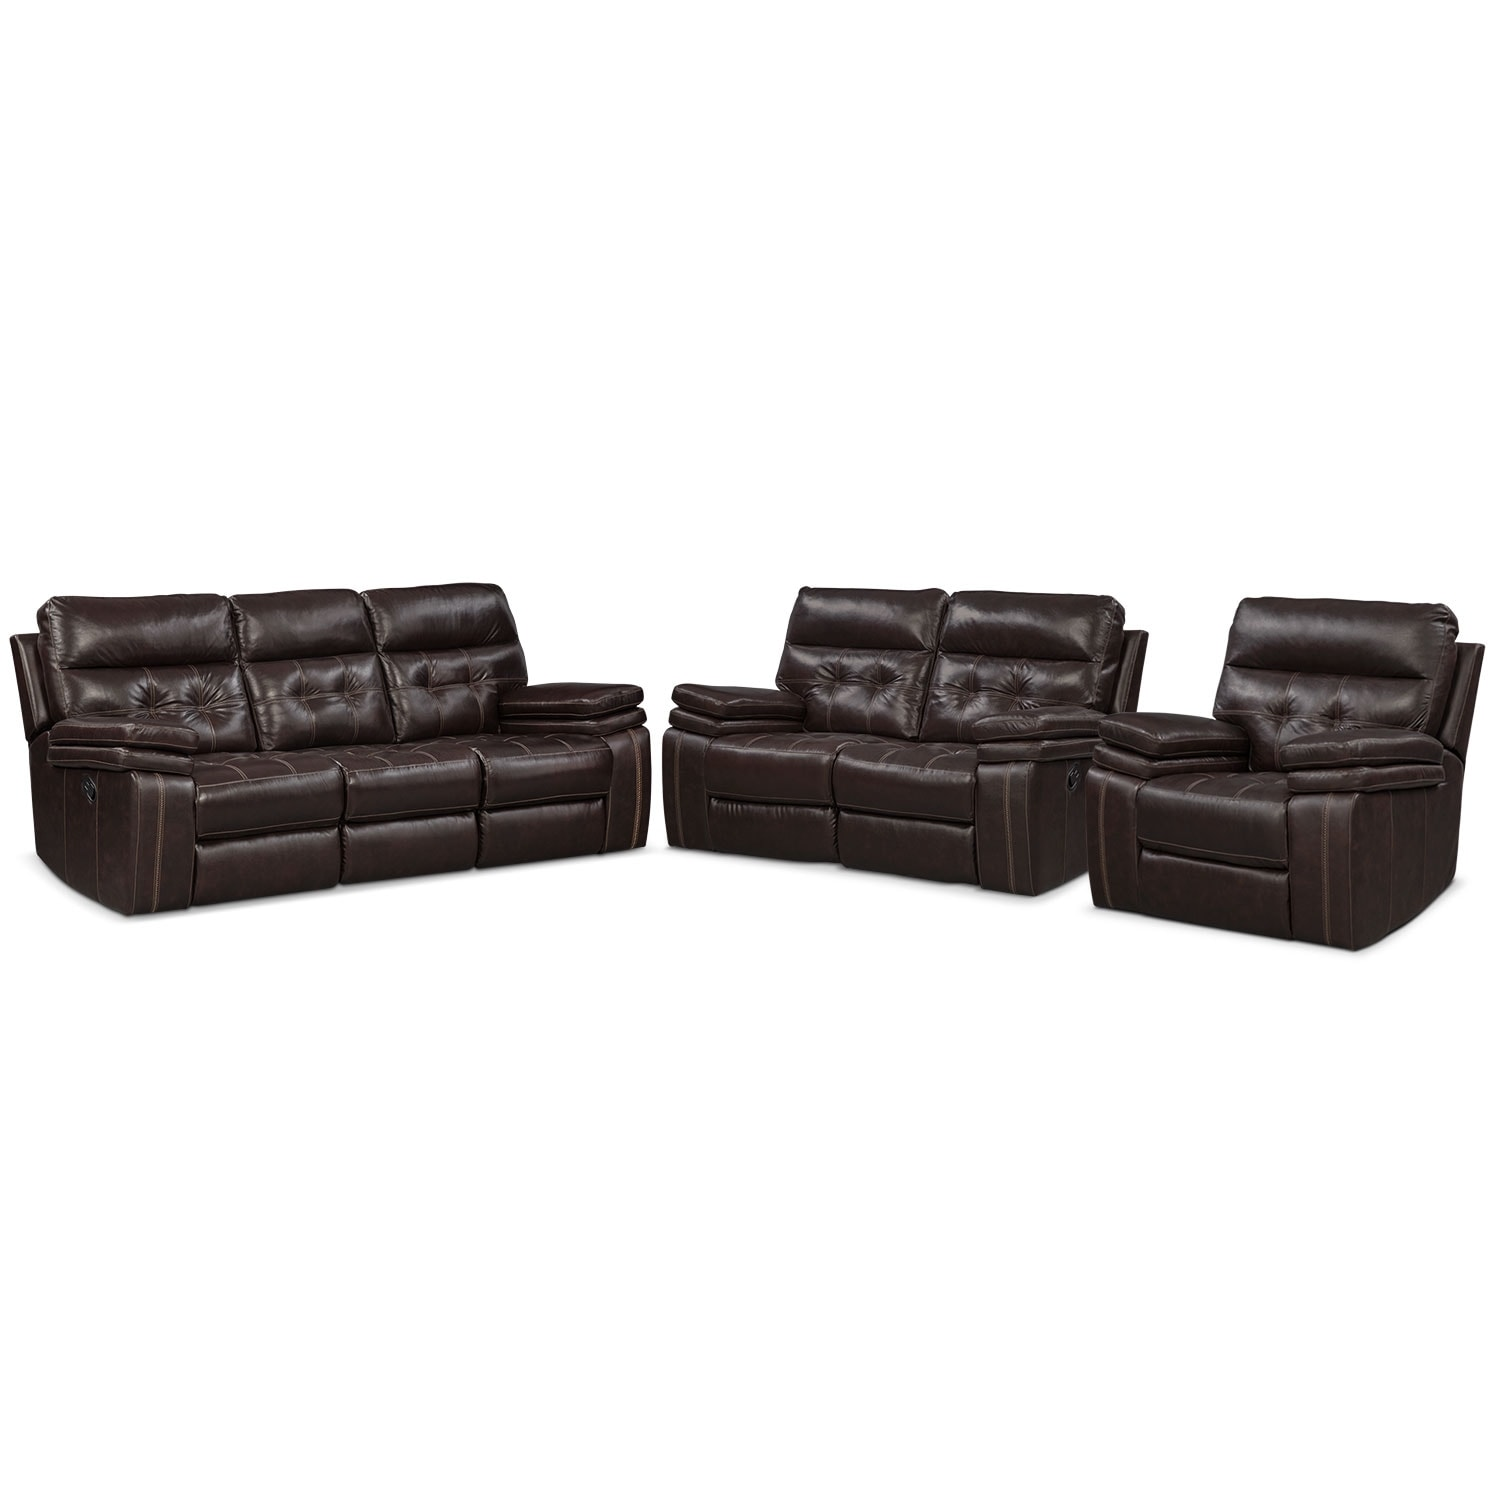 Living Room Furniture - Brisco Brown 3 Pc. Manual Reclining Living Room